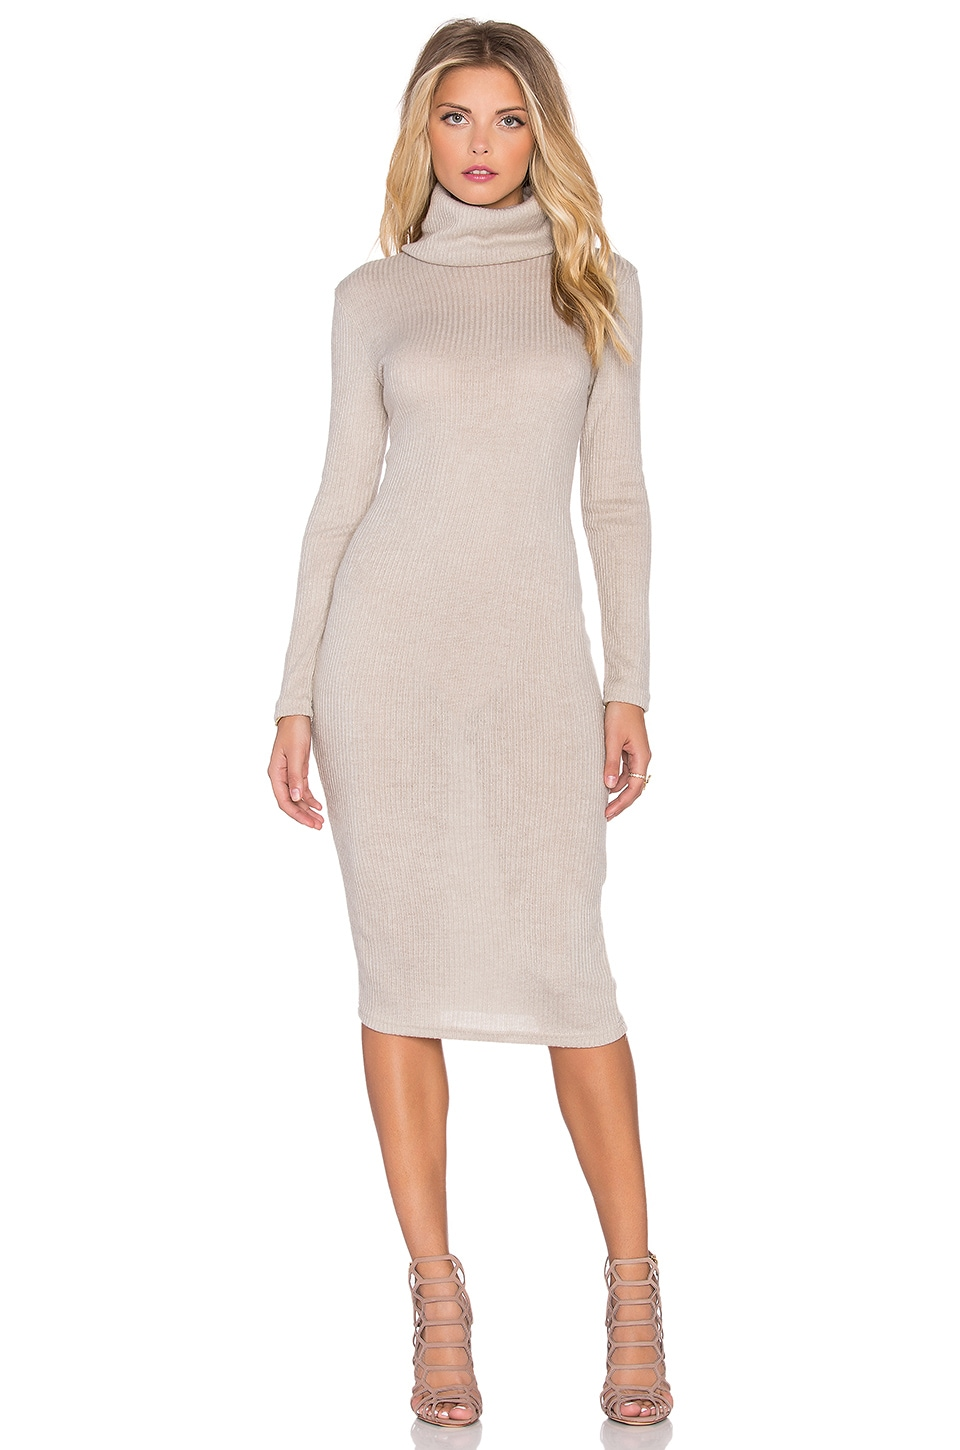 GLAMOROUS Turtleneck Sweater Dress in Cream